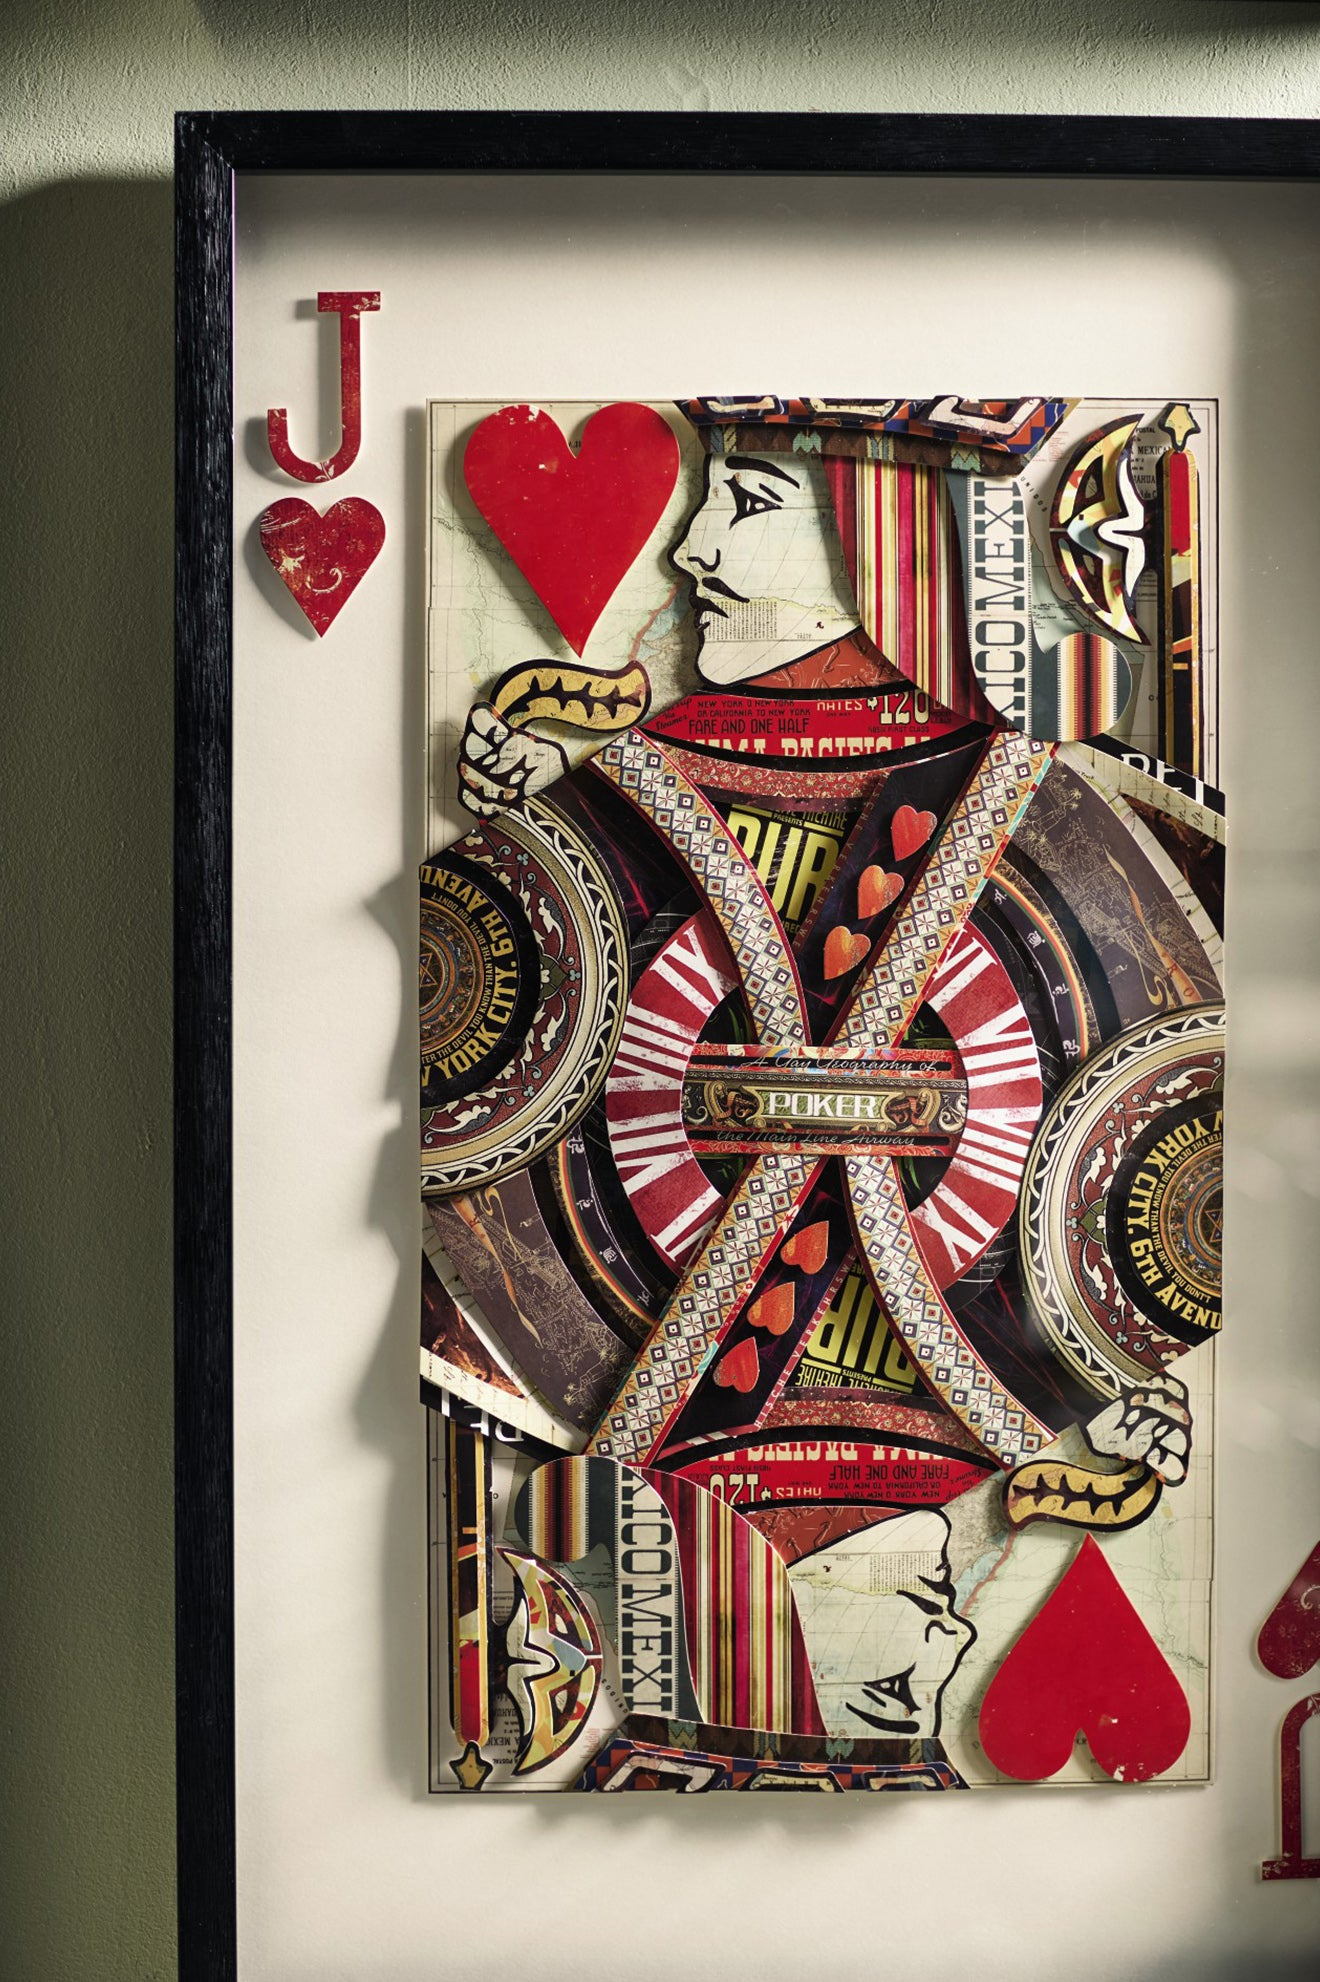 Oka style space by Martyn White Designs featuring playing cards artwork